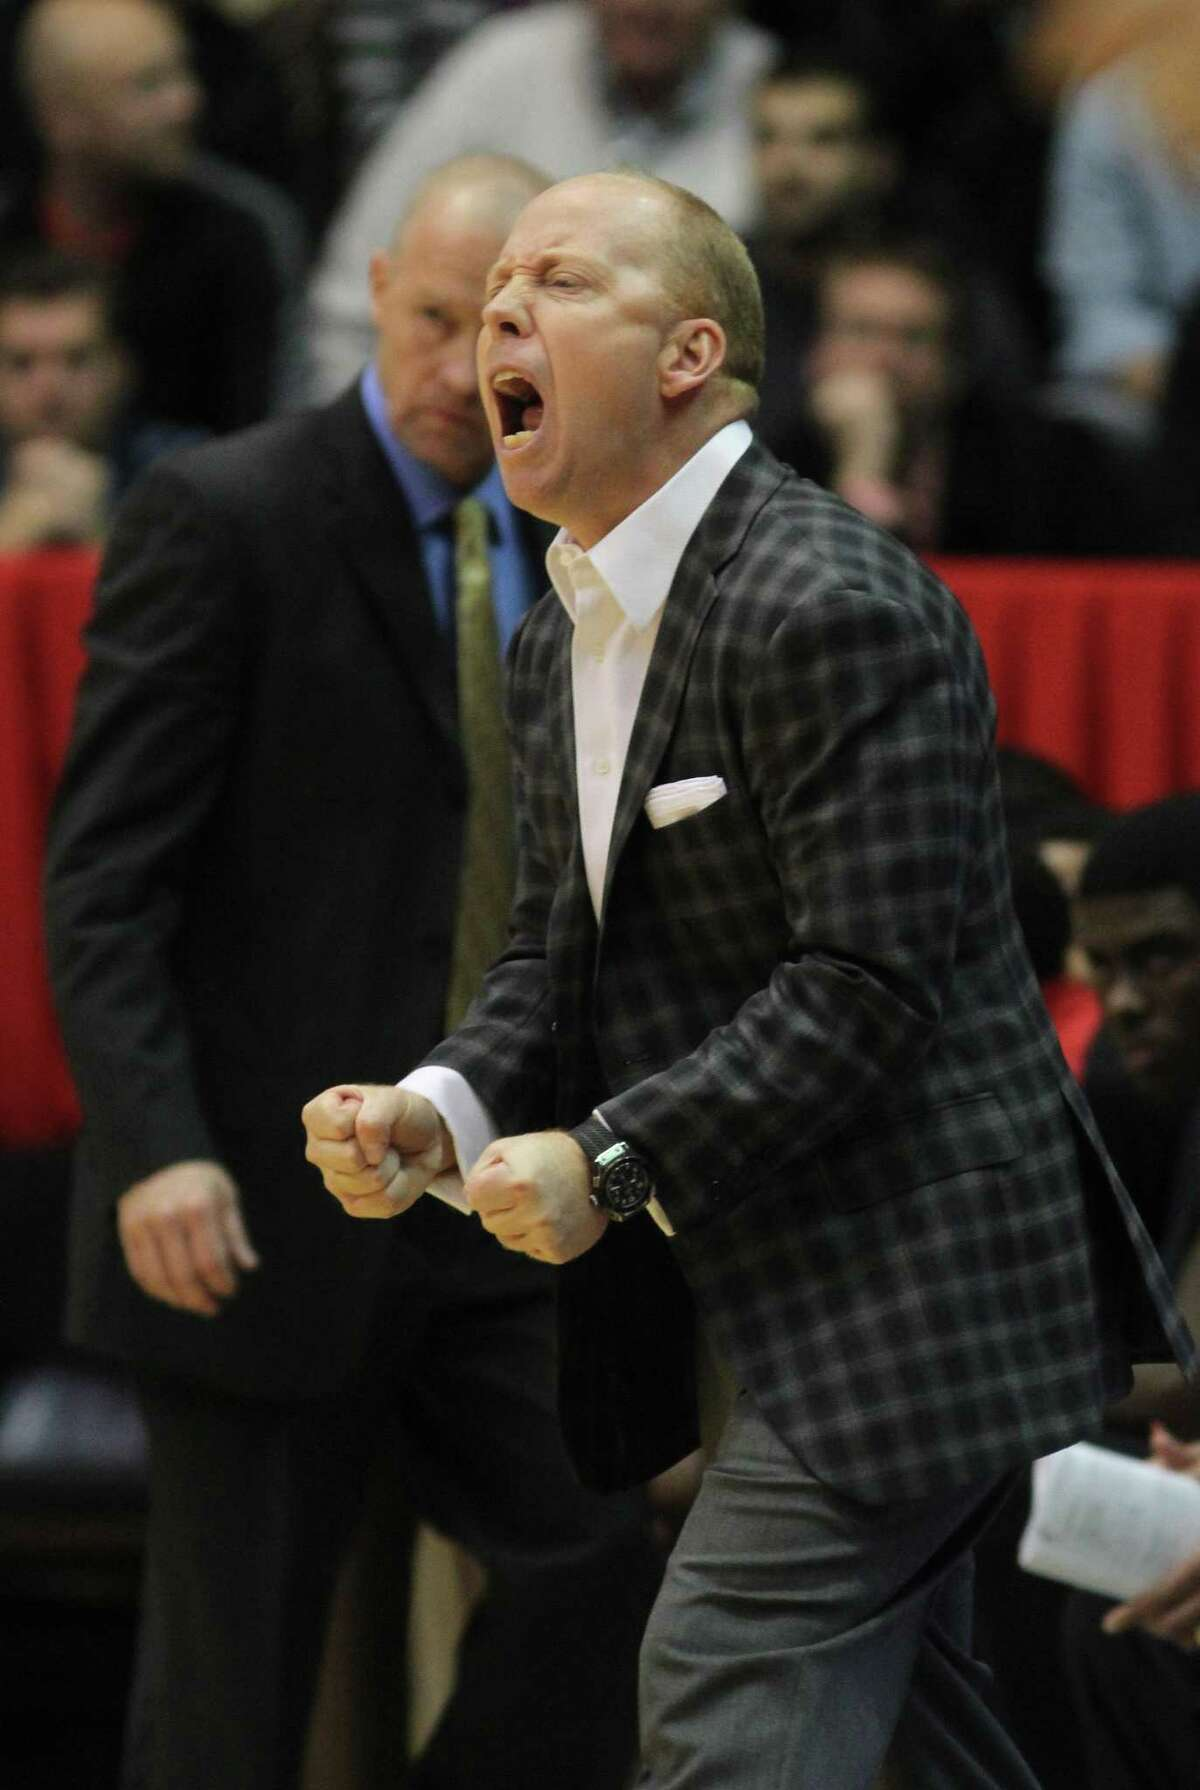 Bearcats coach Mick Cronin directs players during a game against San Diego State on Dec. 17 in Cincinnati.